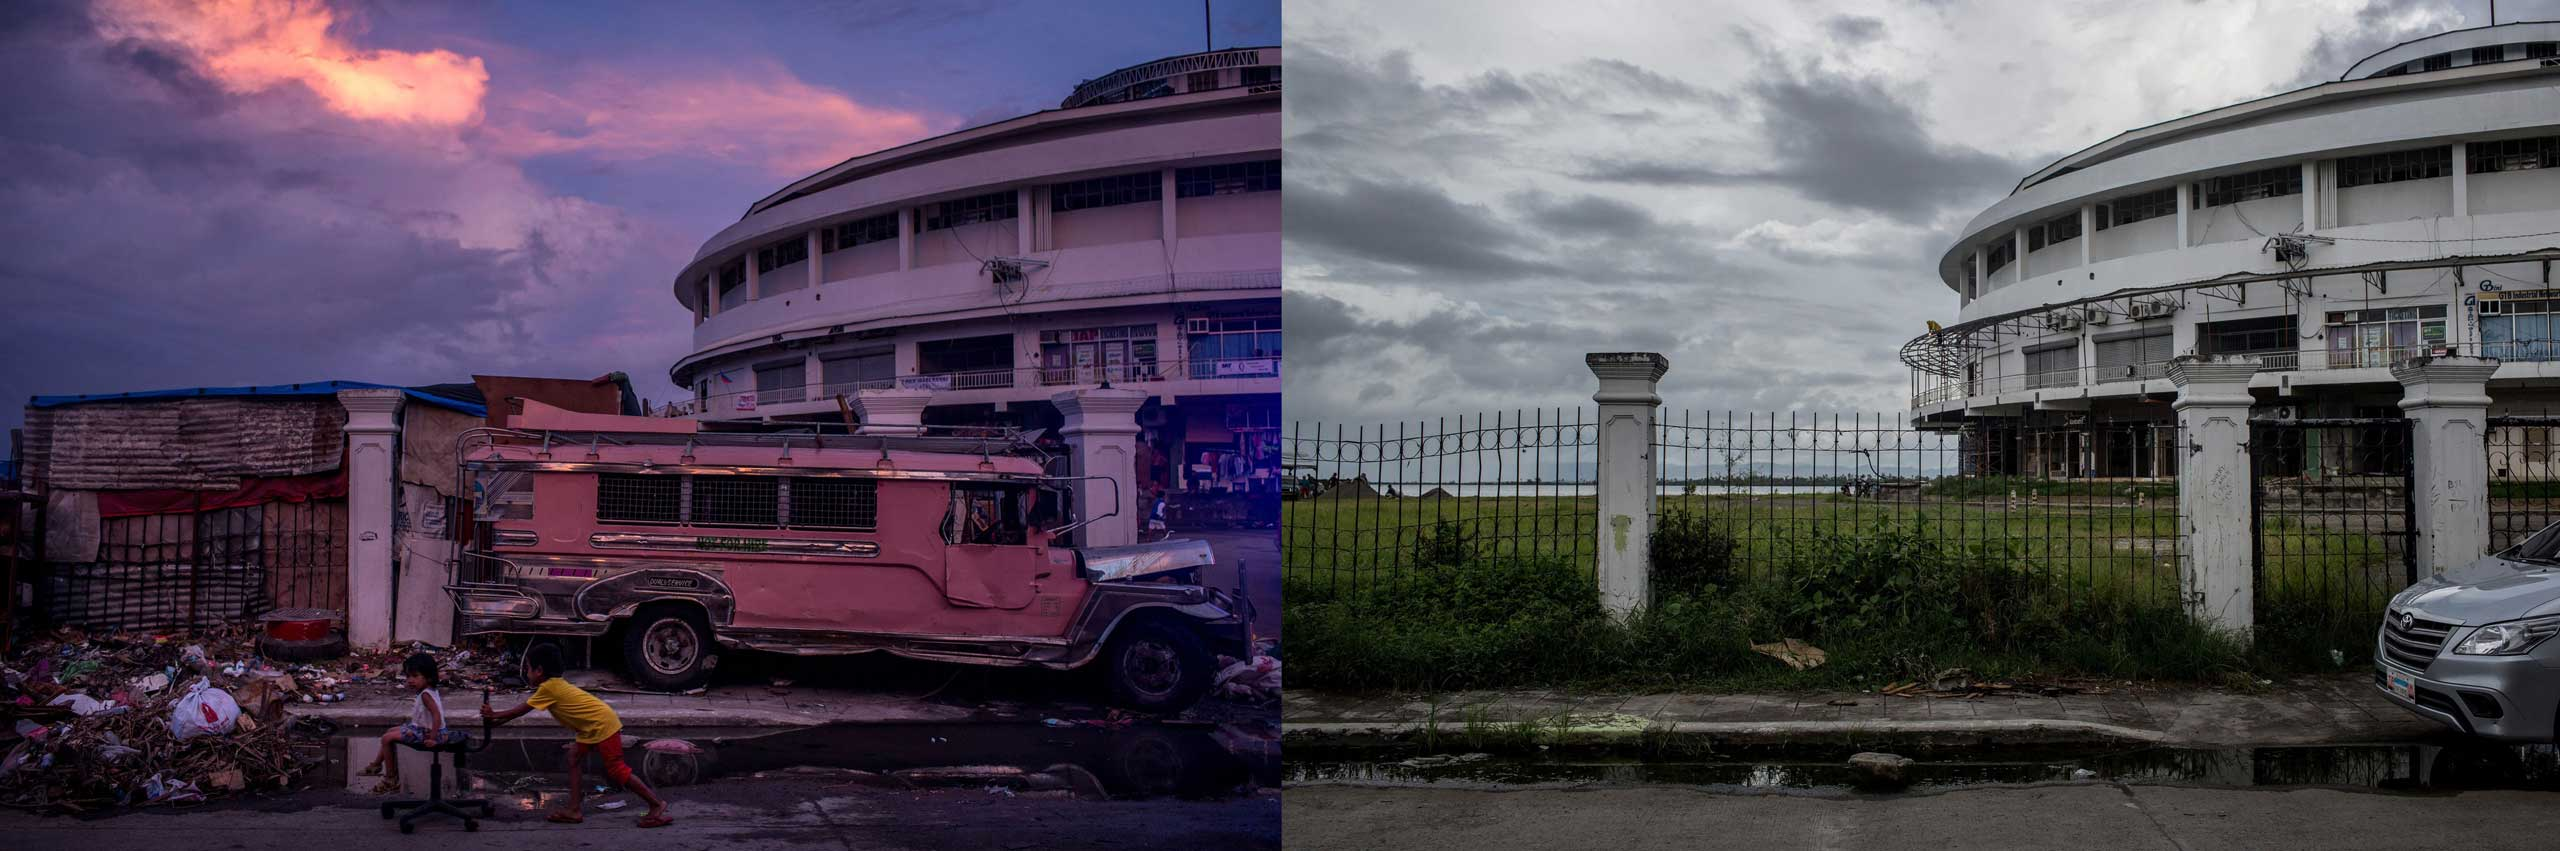 Before: Children play on the street in front of the Tacloban Astrodome evacuation center following the recent super typhoon on Nov. 20, 2013 in Leyte, Philippines.  After: View of the tacloban Astro Dome one year after Typhoon Haiyan on Nov. 3, 2014.